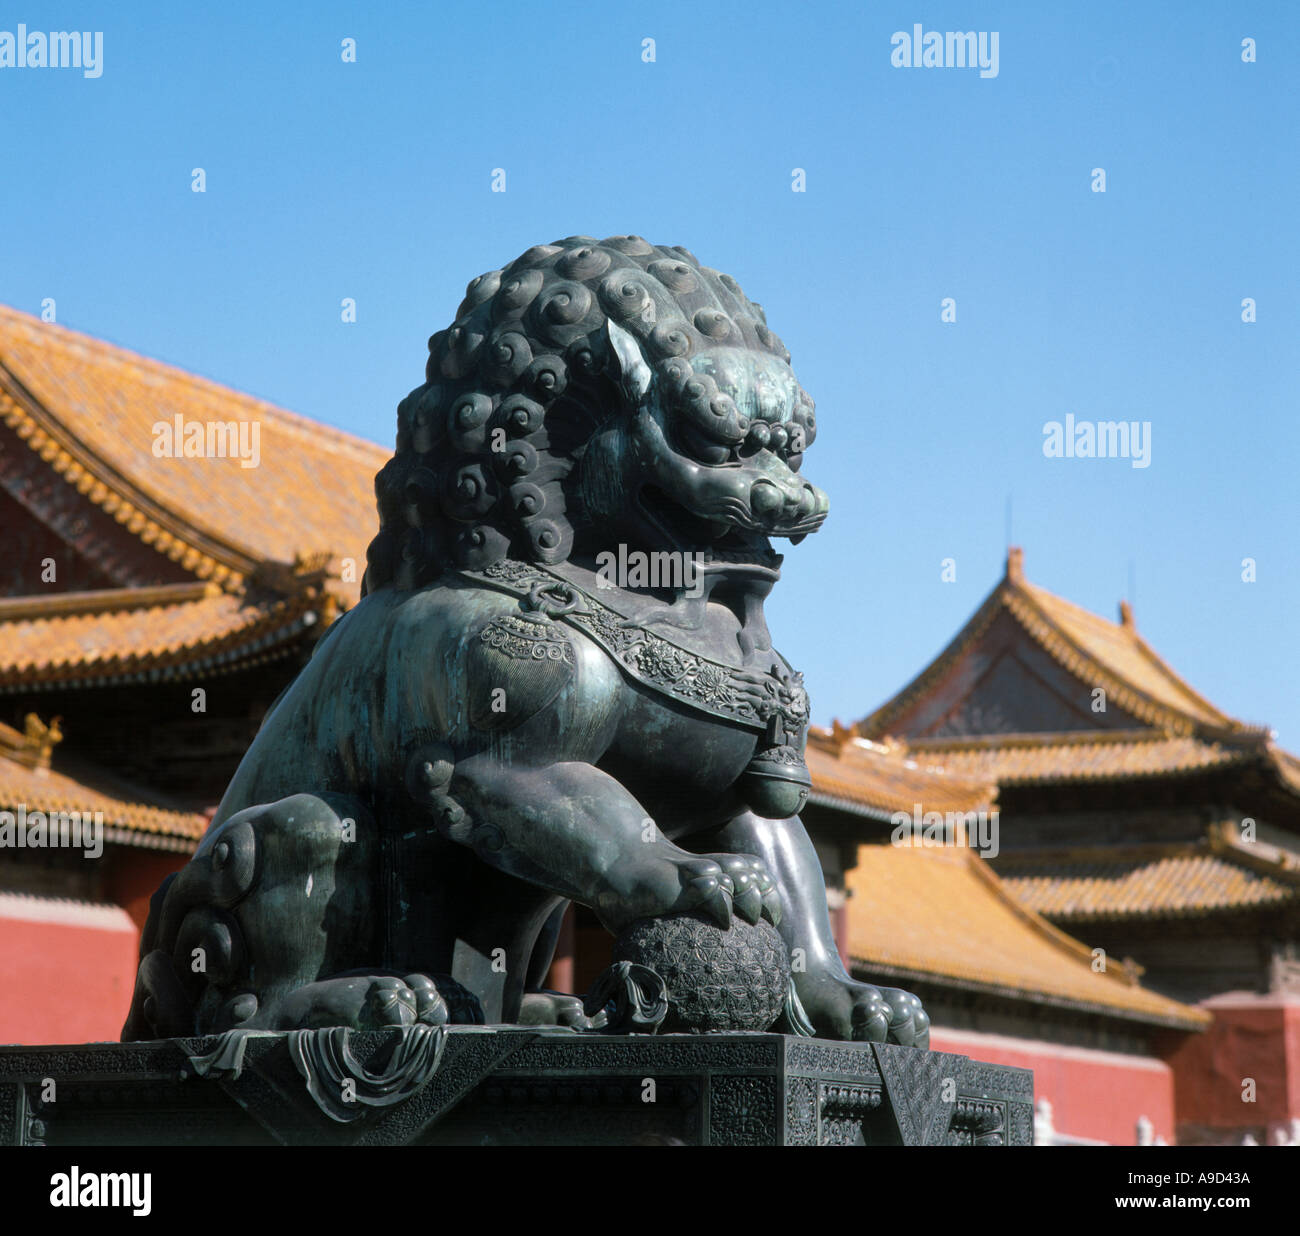 Statue of a bronze lion, Imperial Palace, Forbidden City, Beijing, China - Stock Image